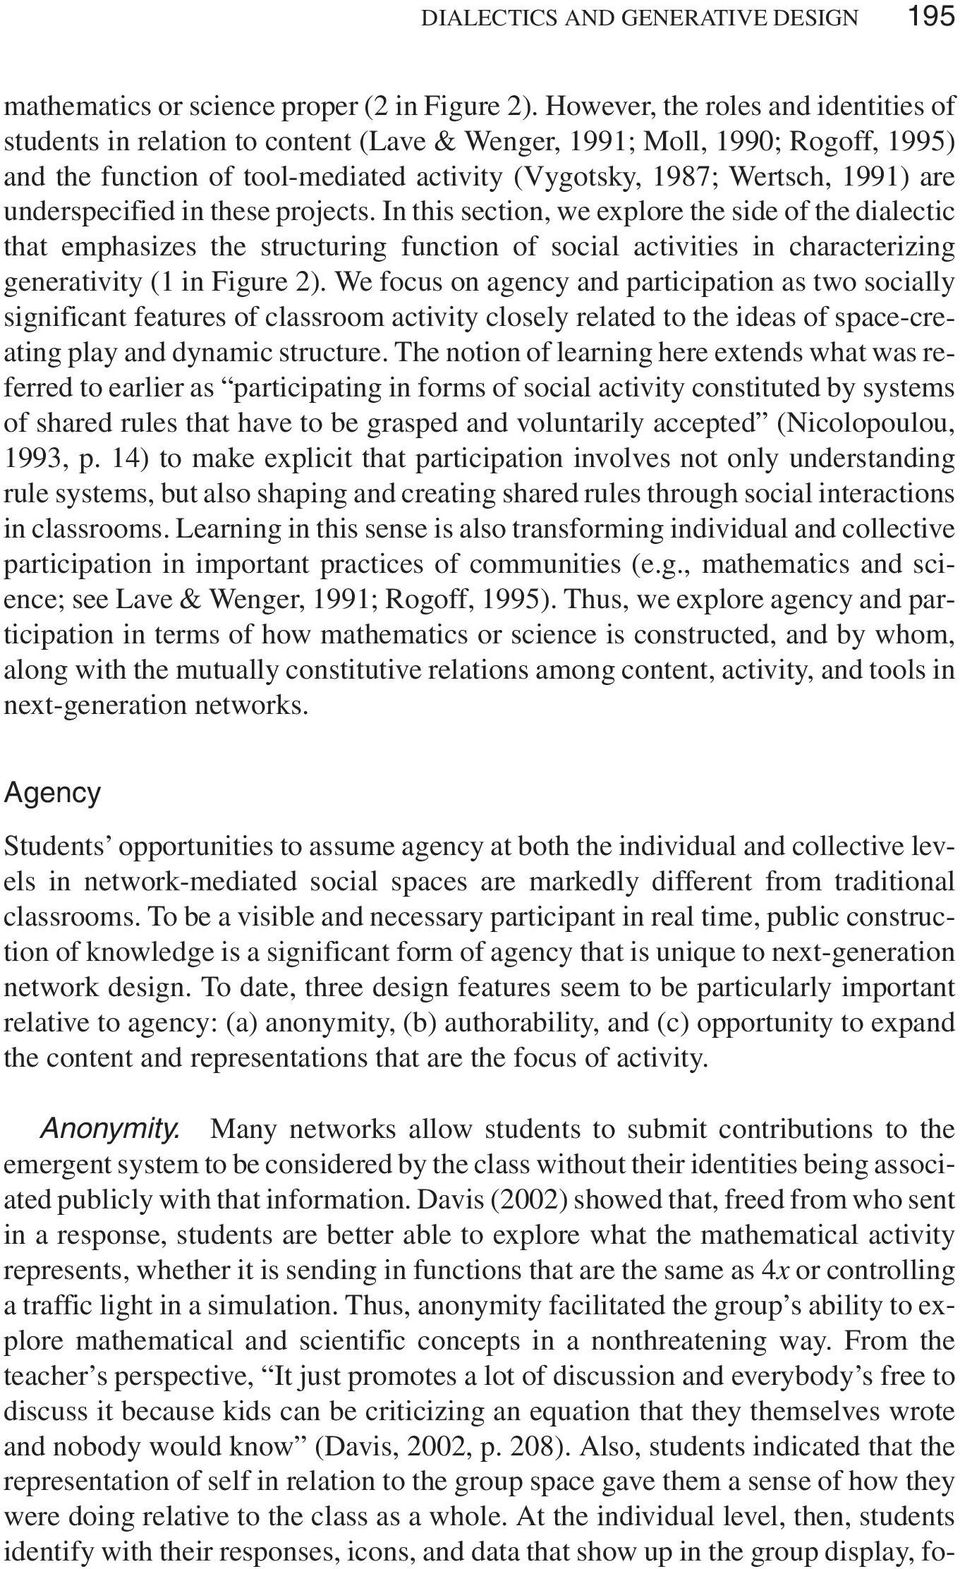 underspecified in these projects. In this section, we explore the side of the dialectic that emphasizes the structuring function of social activities in characterizing generativity (1 in Figure 2).